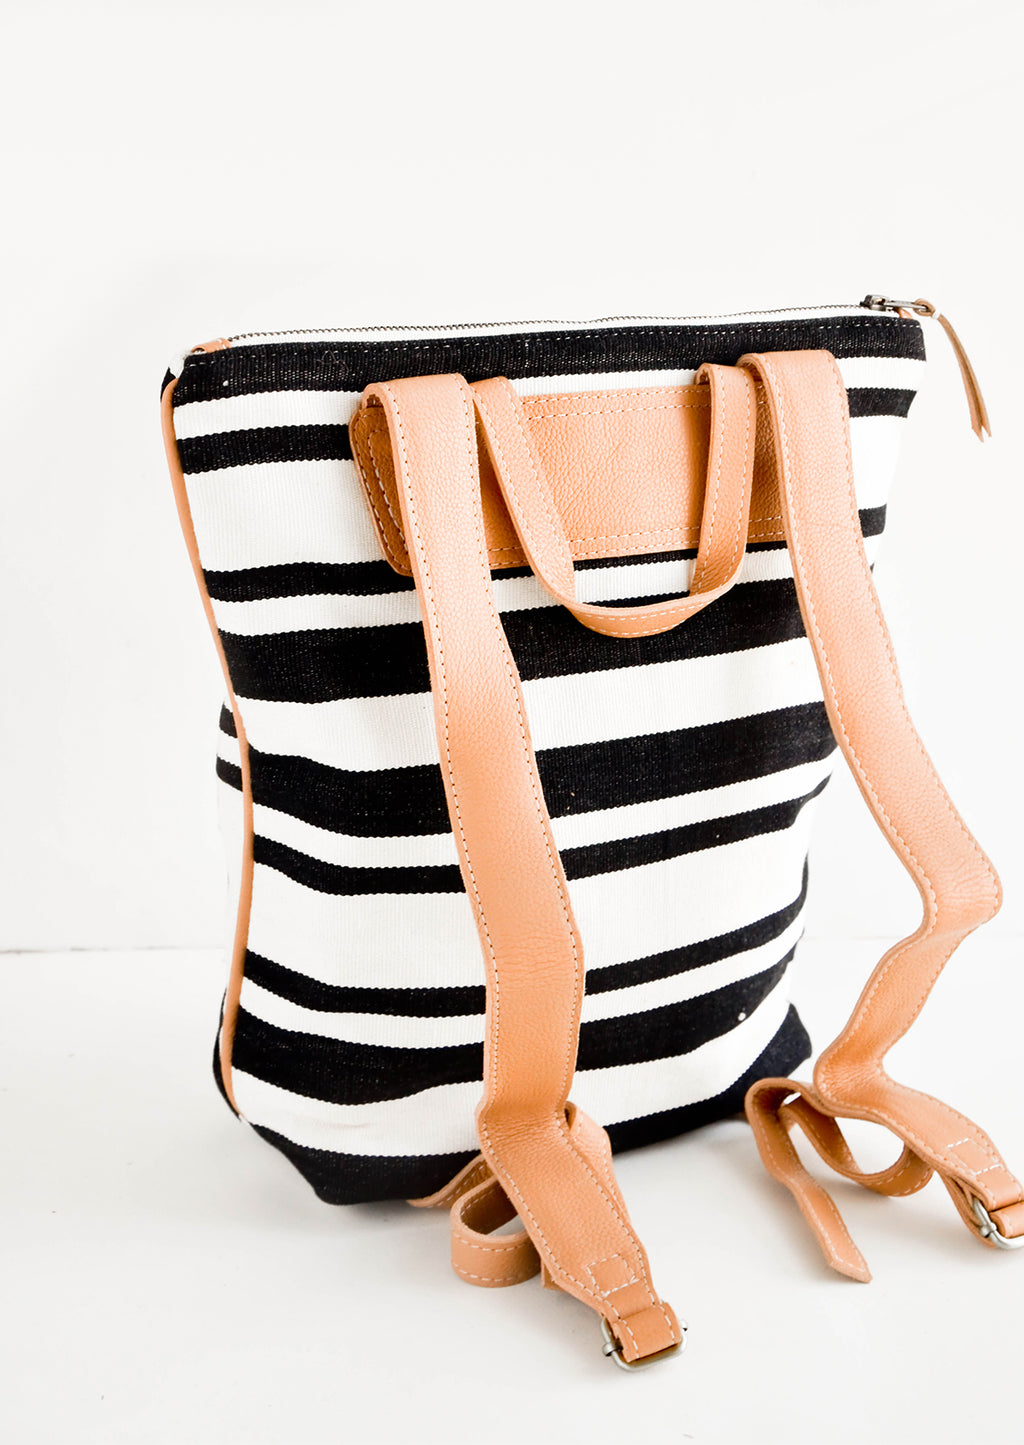 3: Tanned leather straps on the back of black & white striped canvas backpack